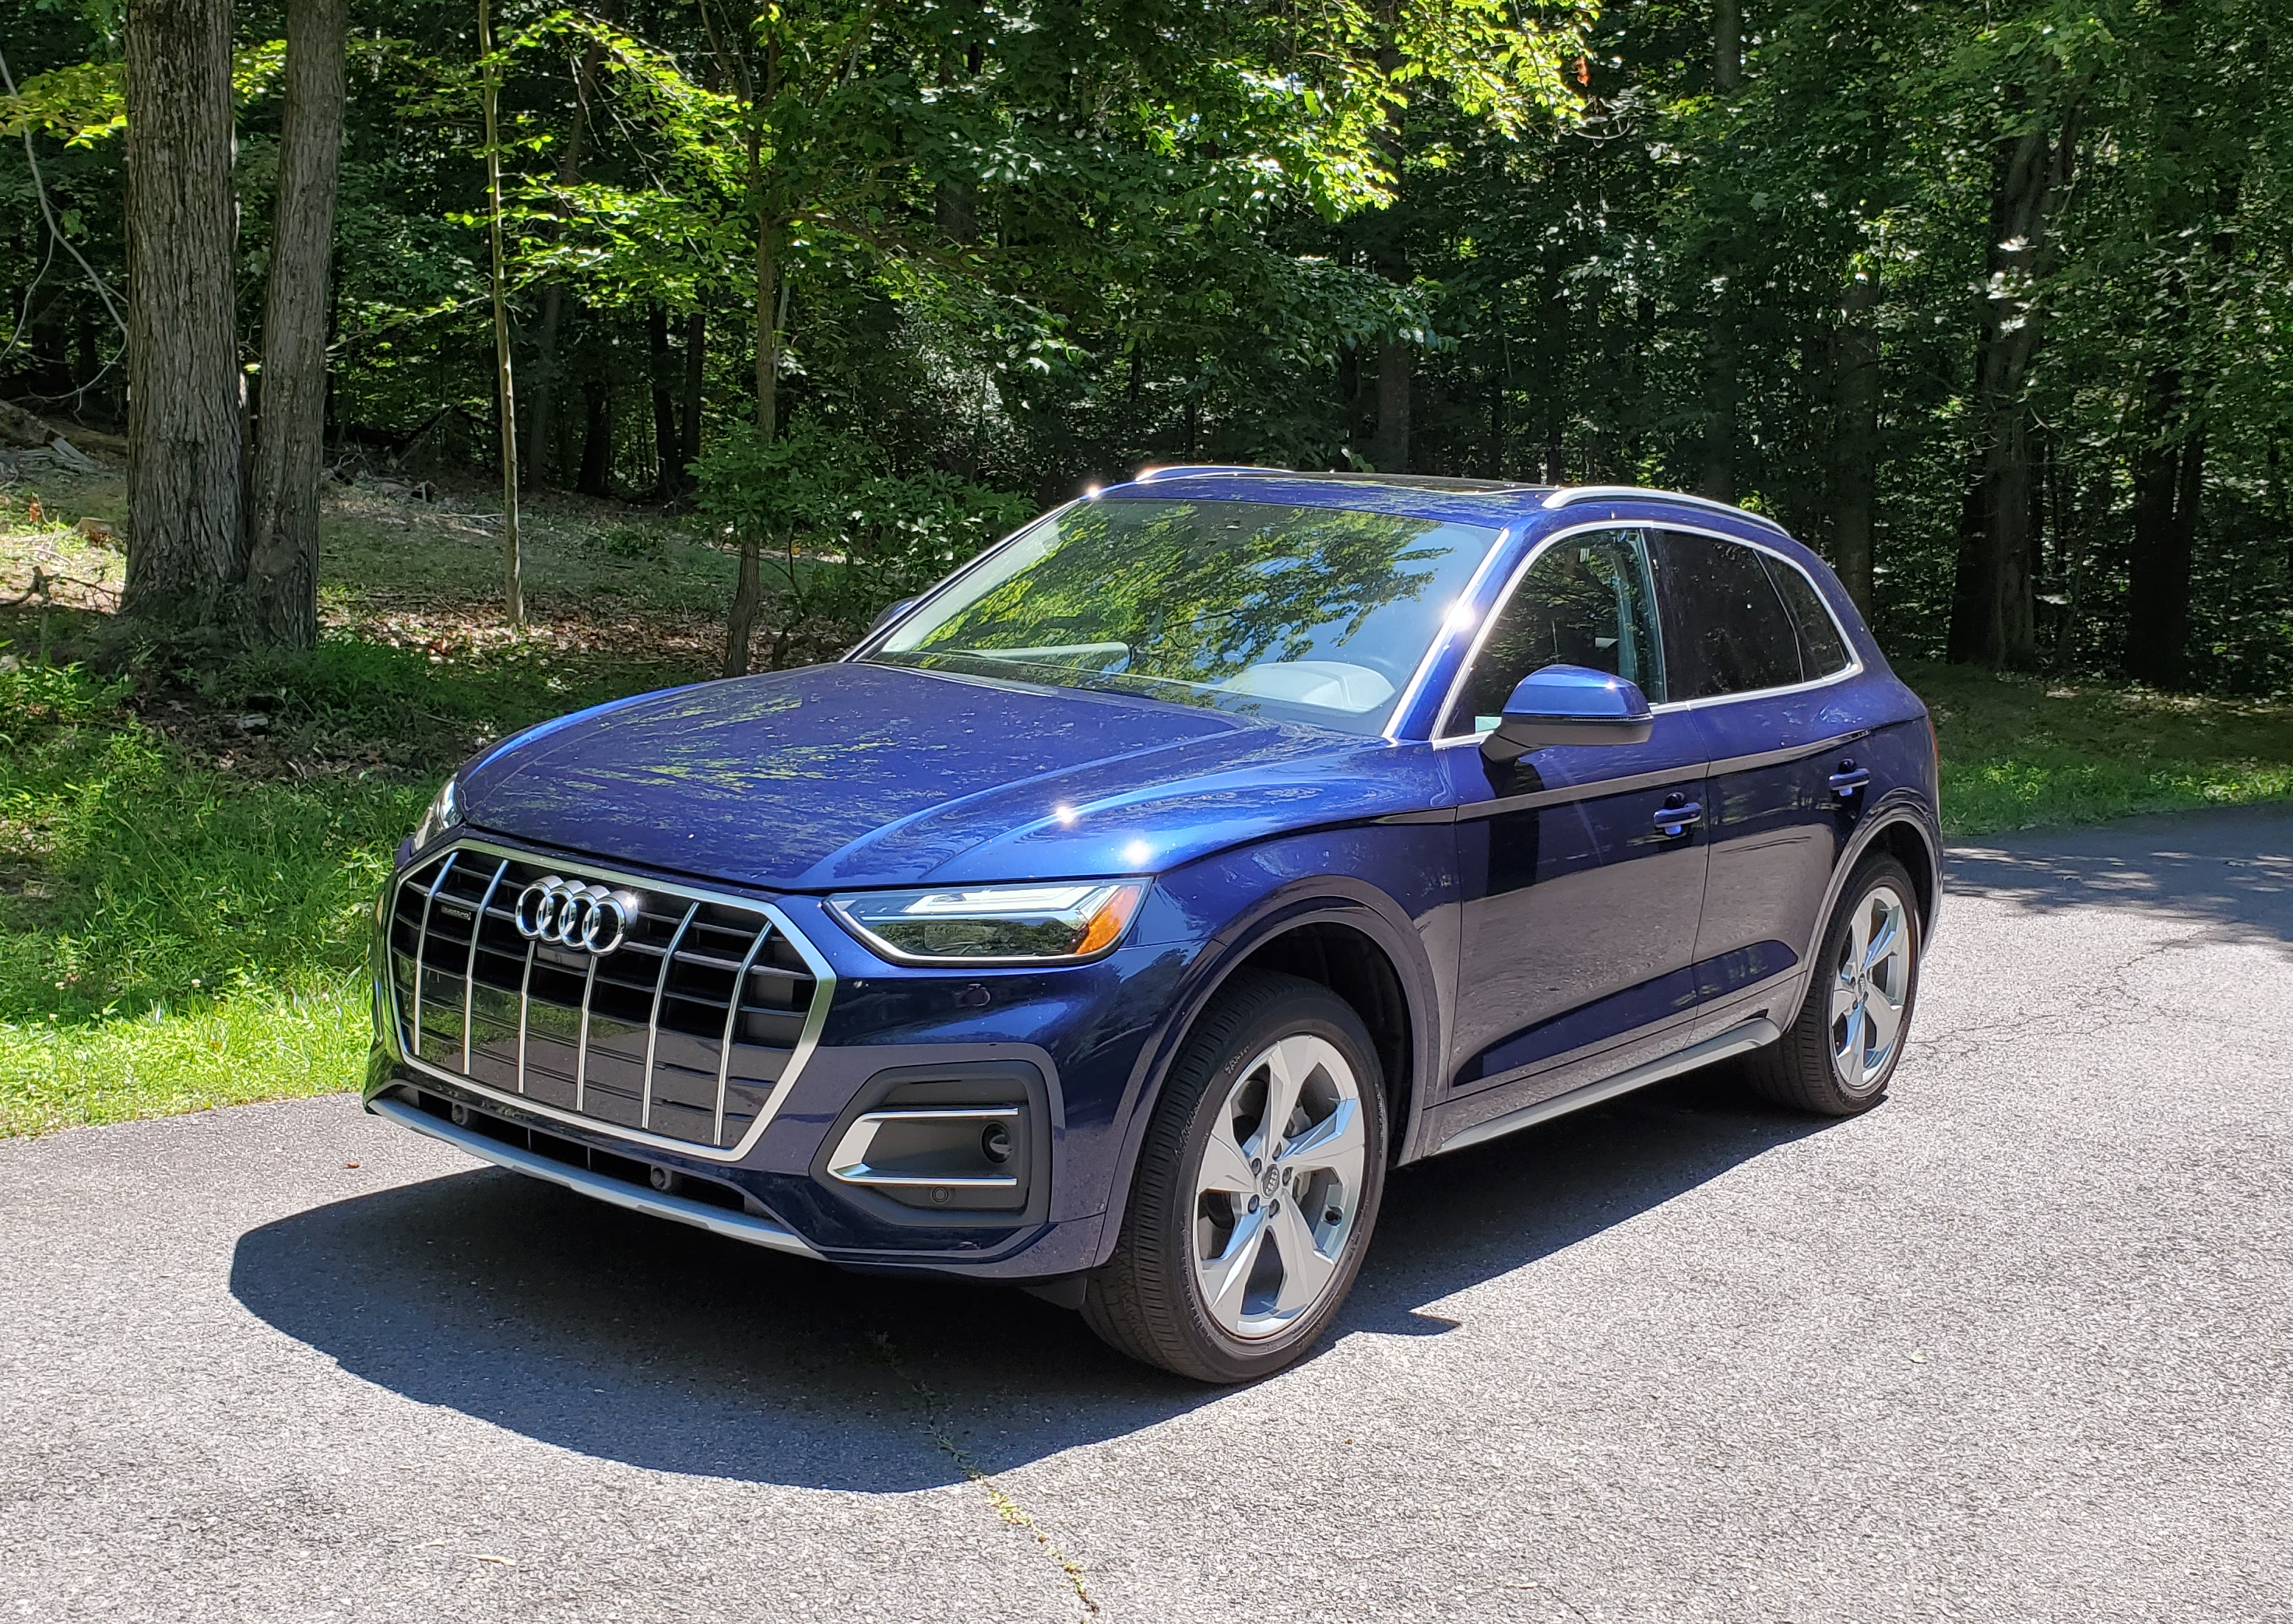 Audi Q5 shows off its large front grill and 19-inch five double arm bi-color finish cast aluminum wheels.